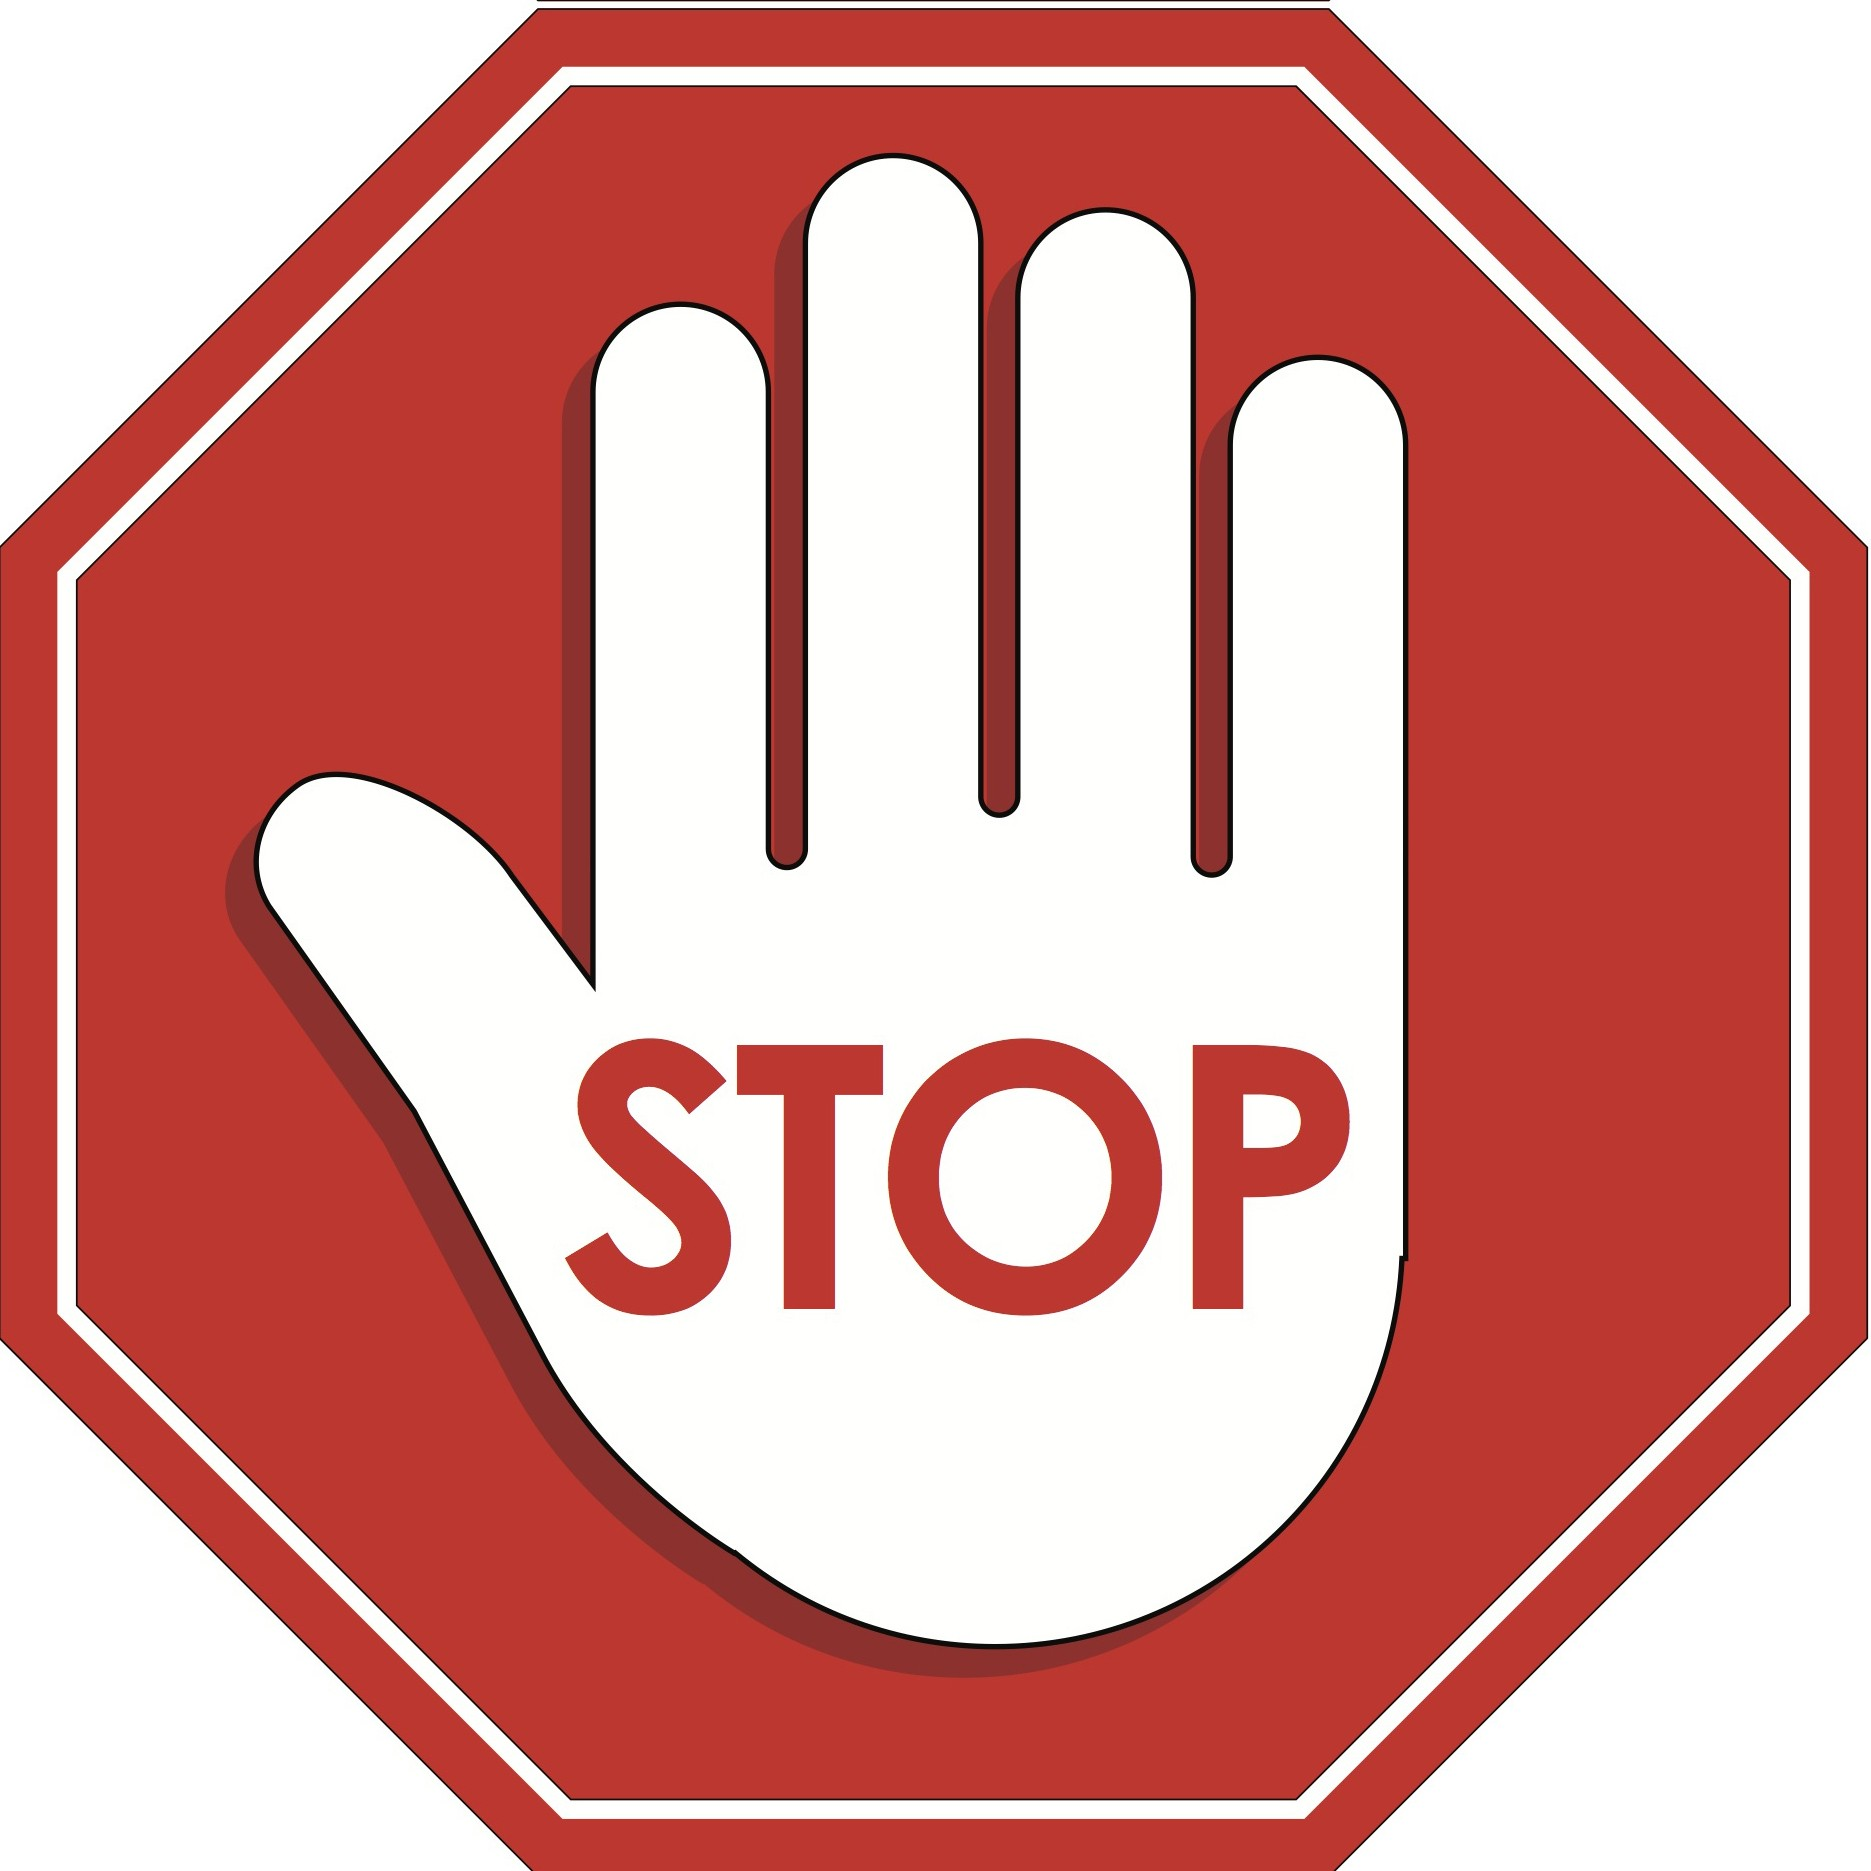 Phenomenal clipart vector freeuse download Phenomenal Image Of Stop Sign Clipart Clip Art   Trenmay.com vector freeuse download